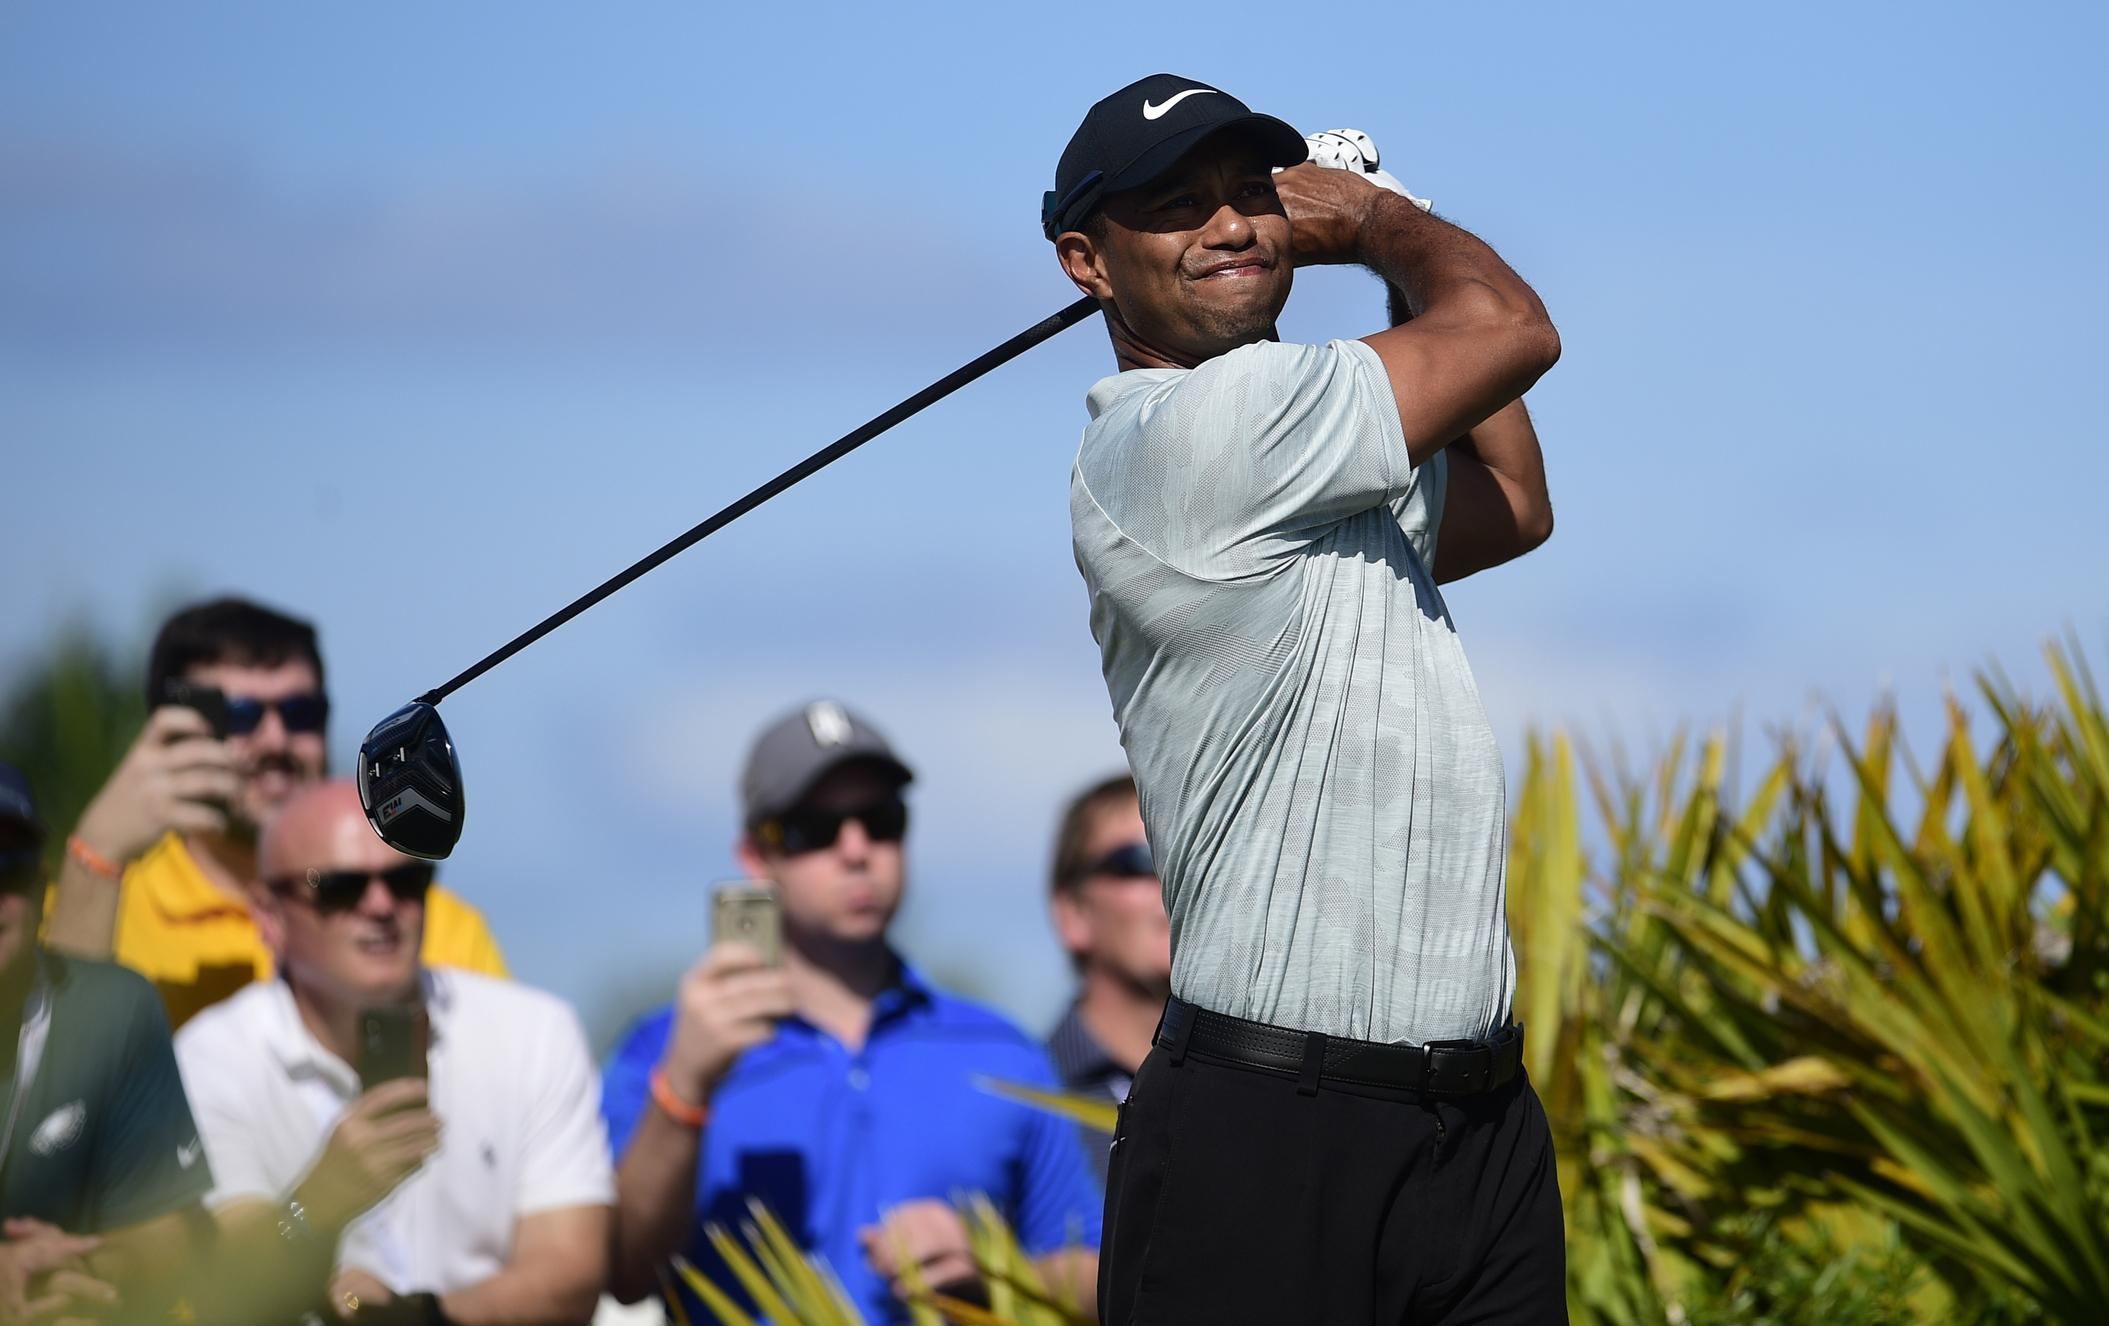 Woods latest admission is further evidence he will likely never return to 100 per cent full fitness